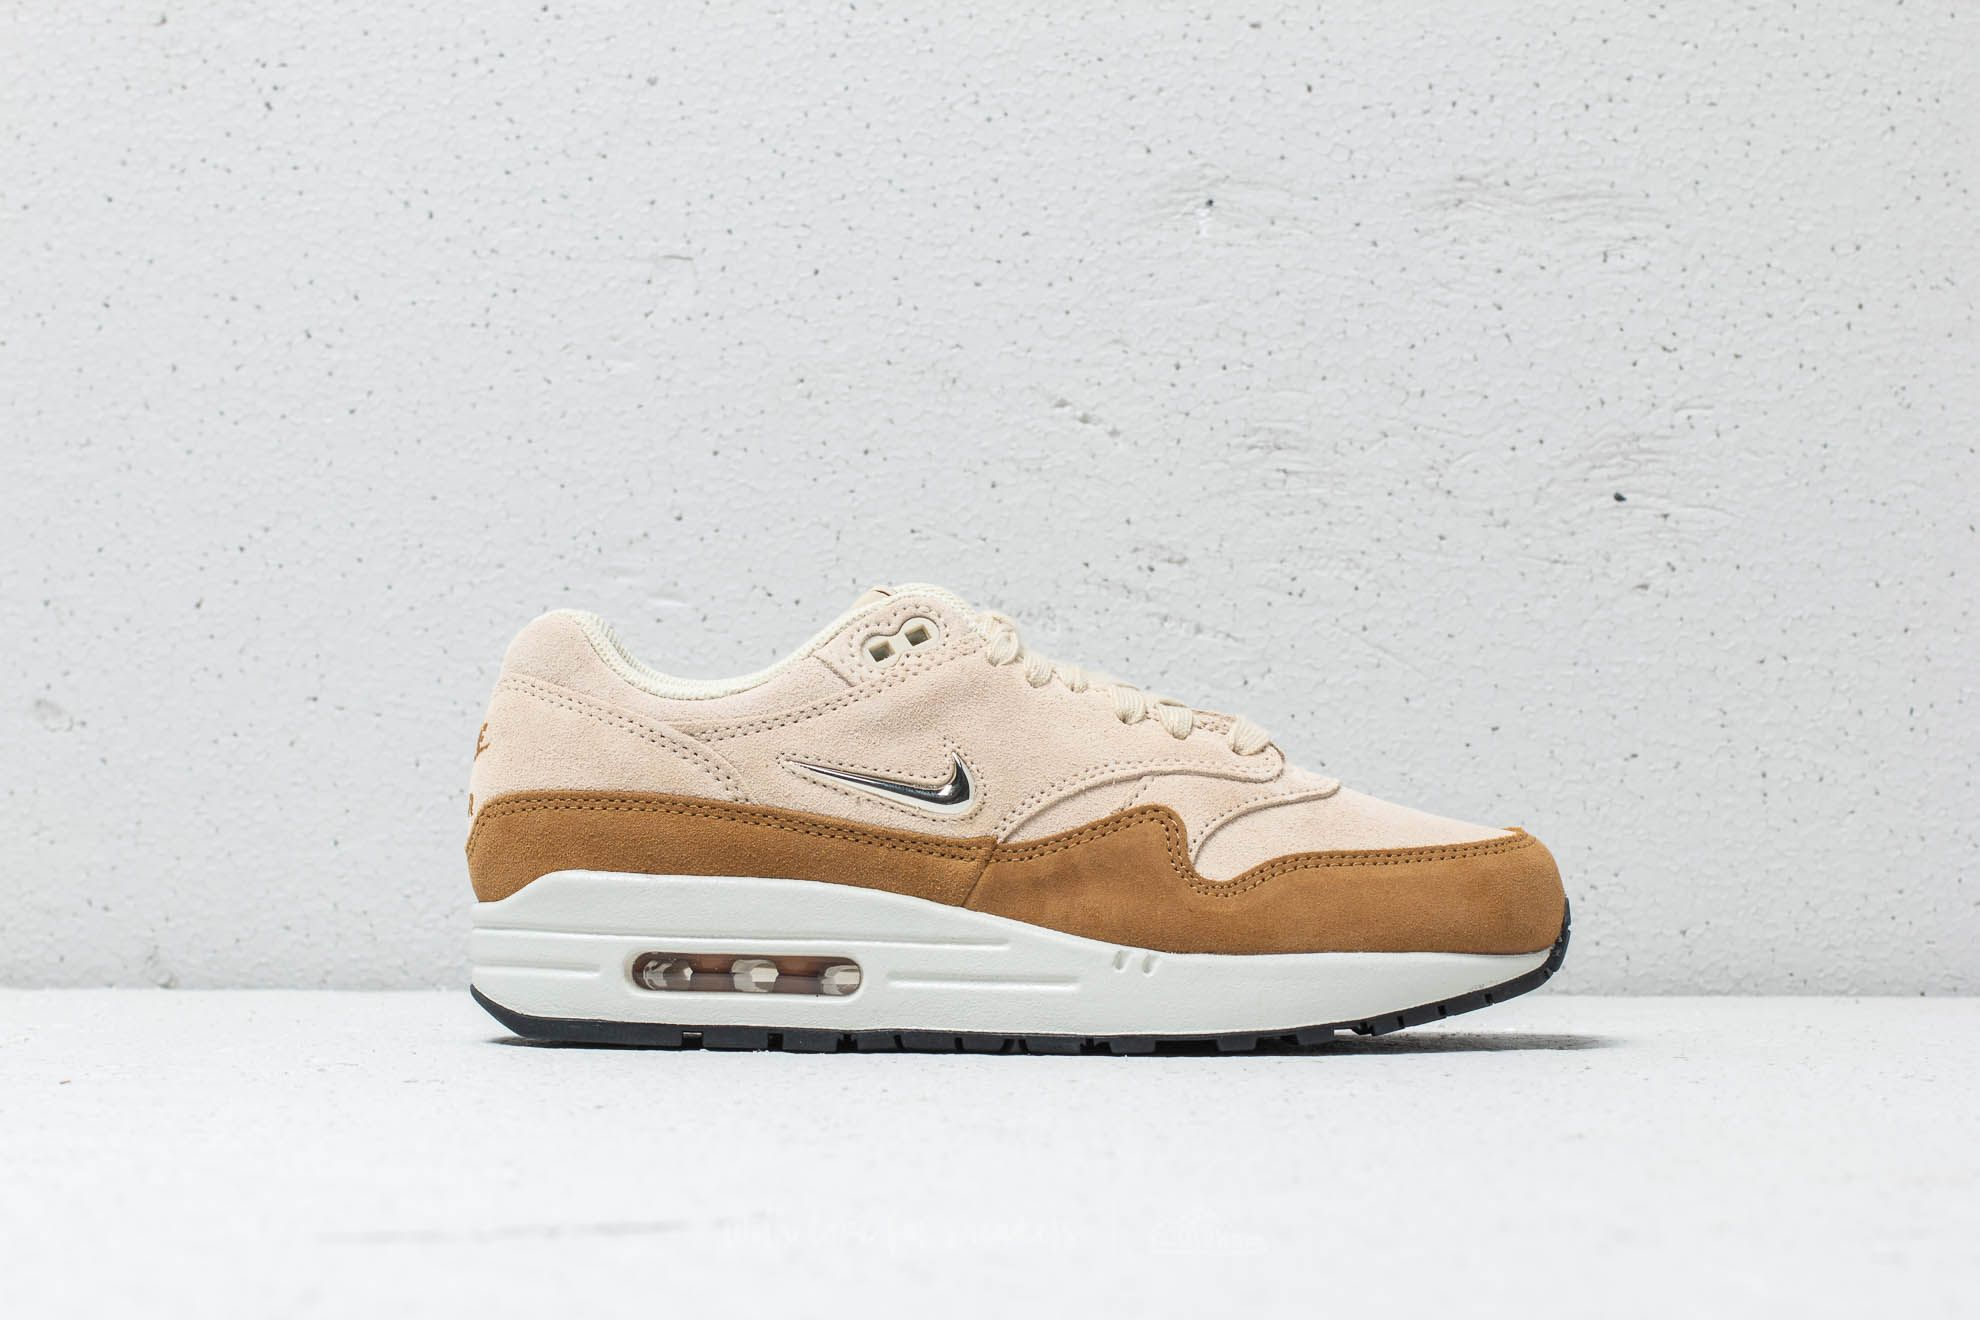 competitive price 63814 ed417 Nike Wmns Air Max 1 Premium SC Beach  Metallic Gold Grain at a great price